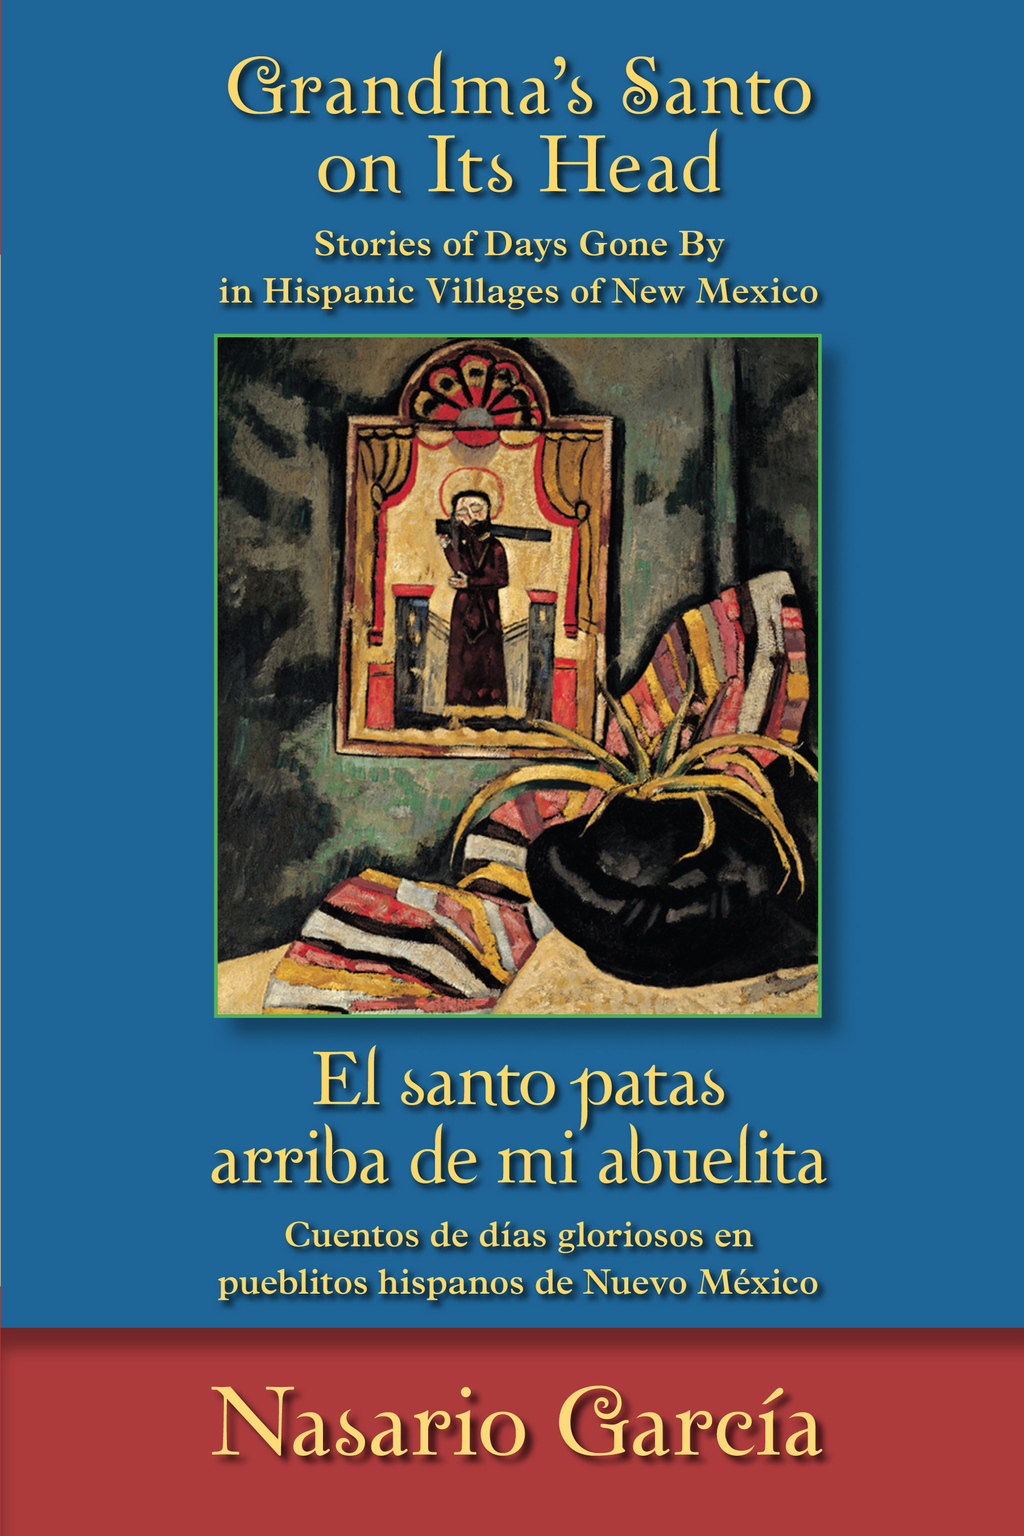 Book Cover: Grandma's Santo on Its Head / El santo patas arriba de mi abuelita